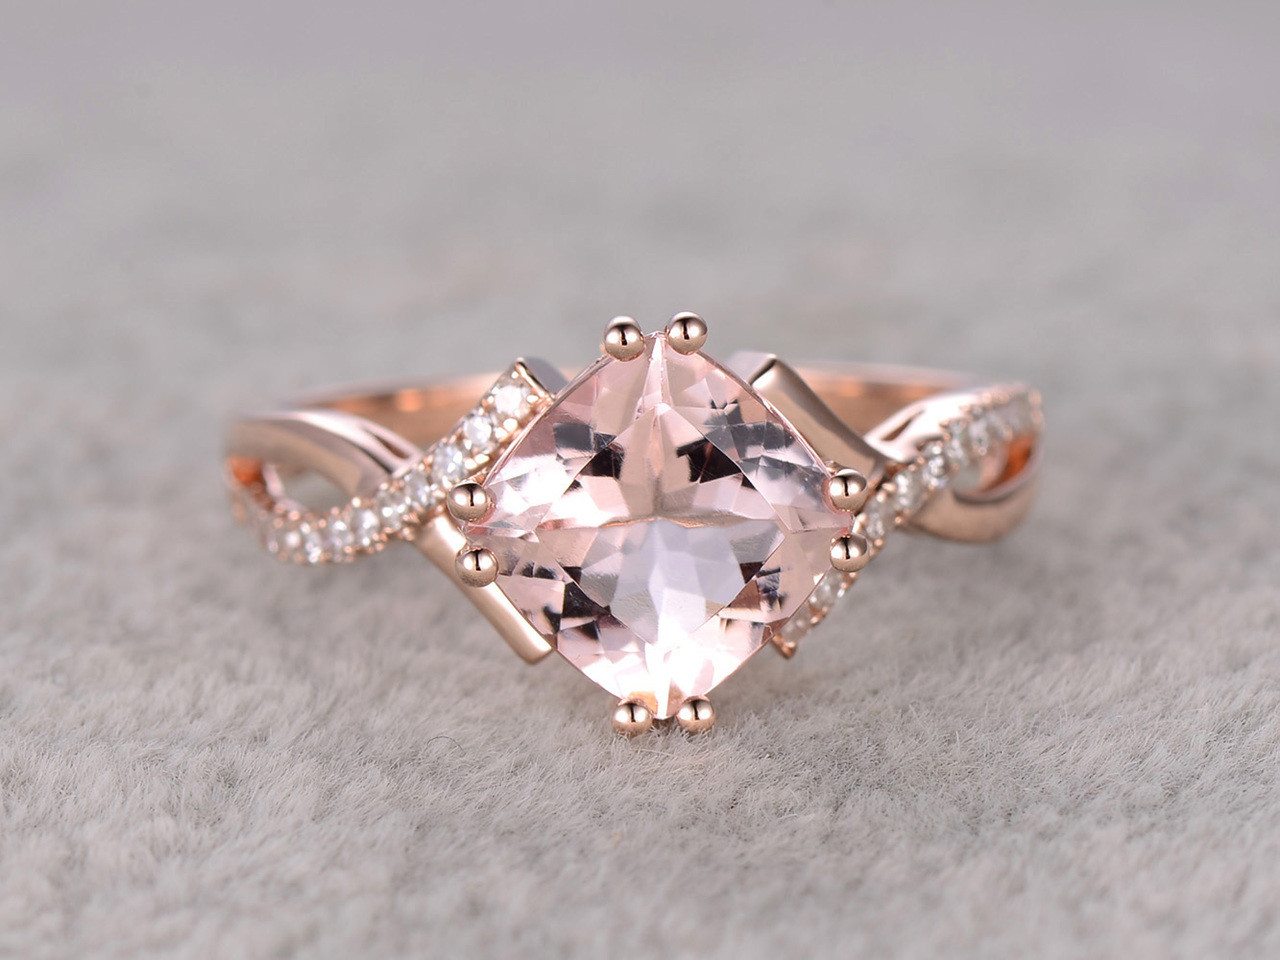 24 Carat Cushion Cut Morganite Engagement Ring Diamond Promise Ring